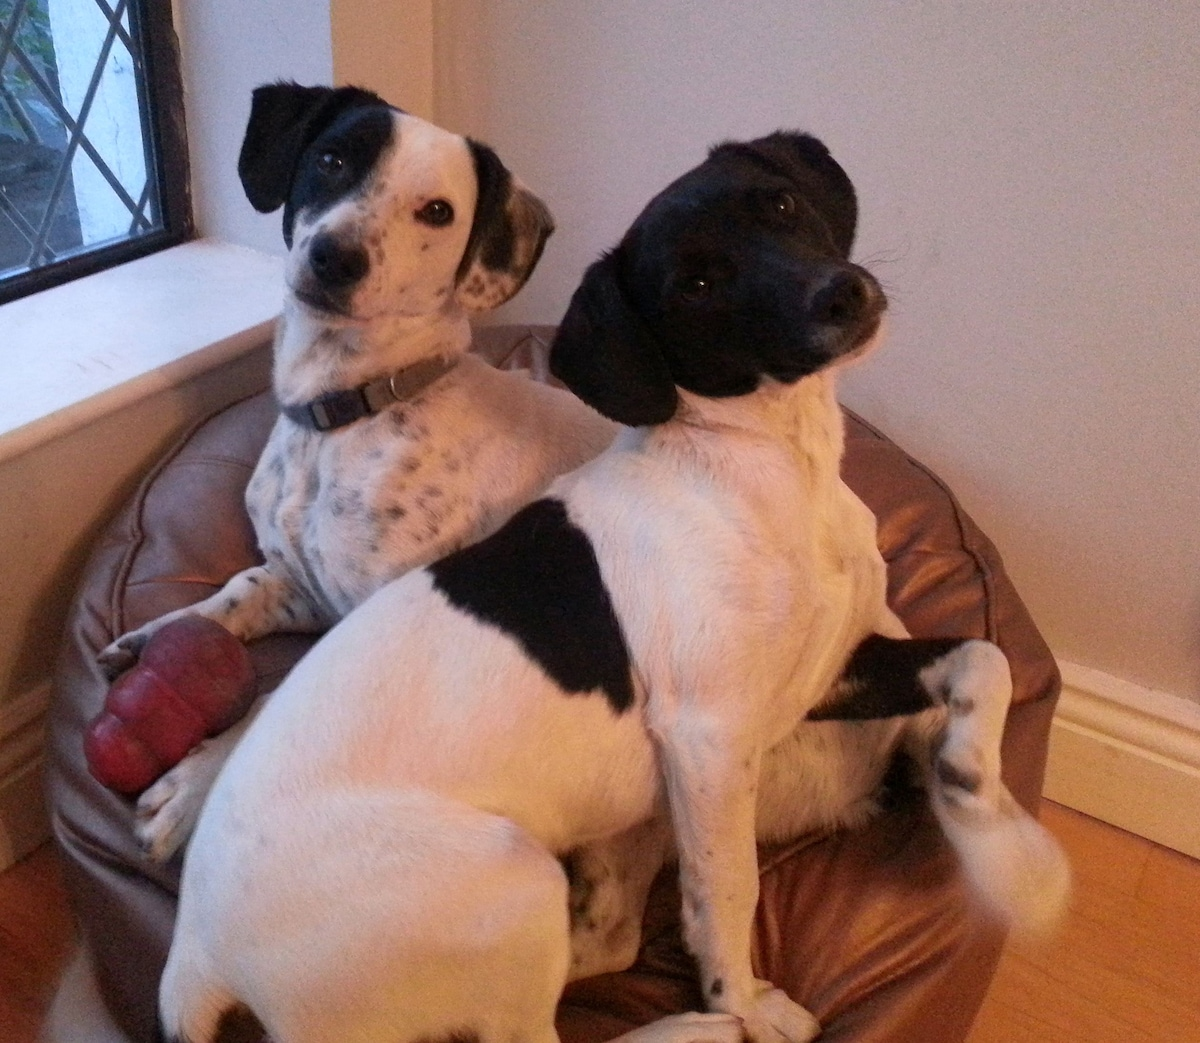 Caesar and Coco look forward to meeting you!